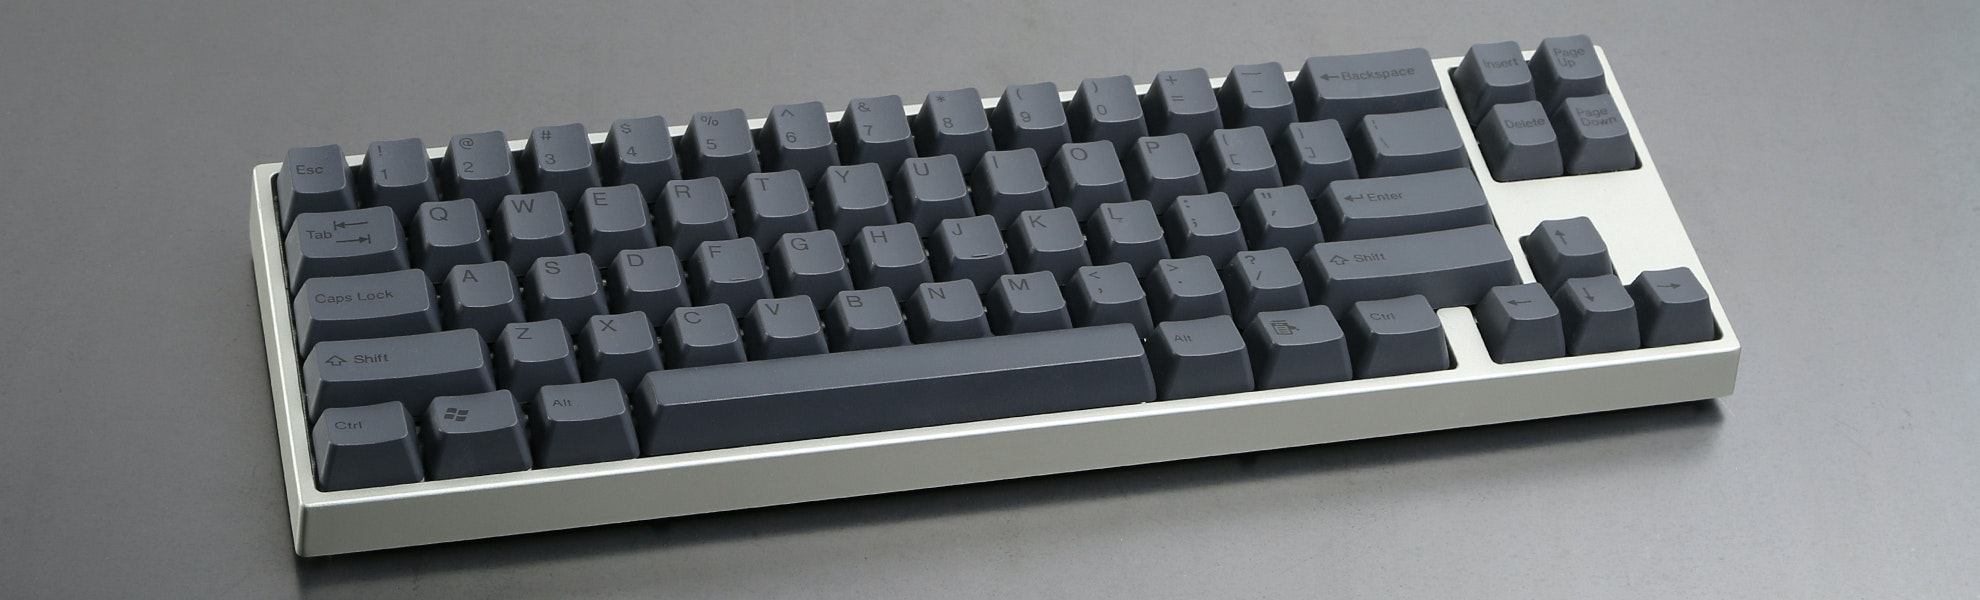 Originative Carbon Black Keycaps